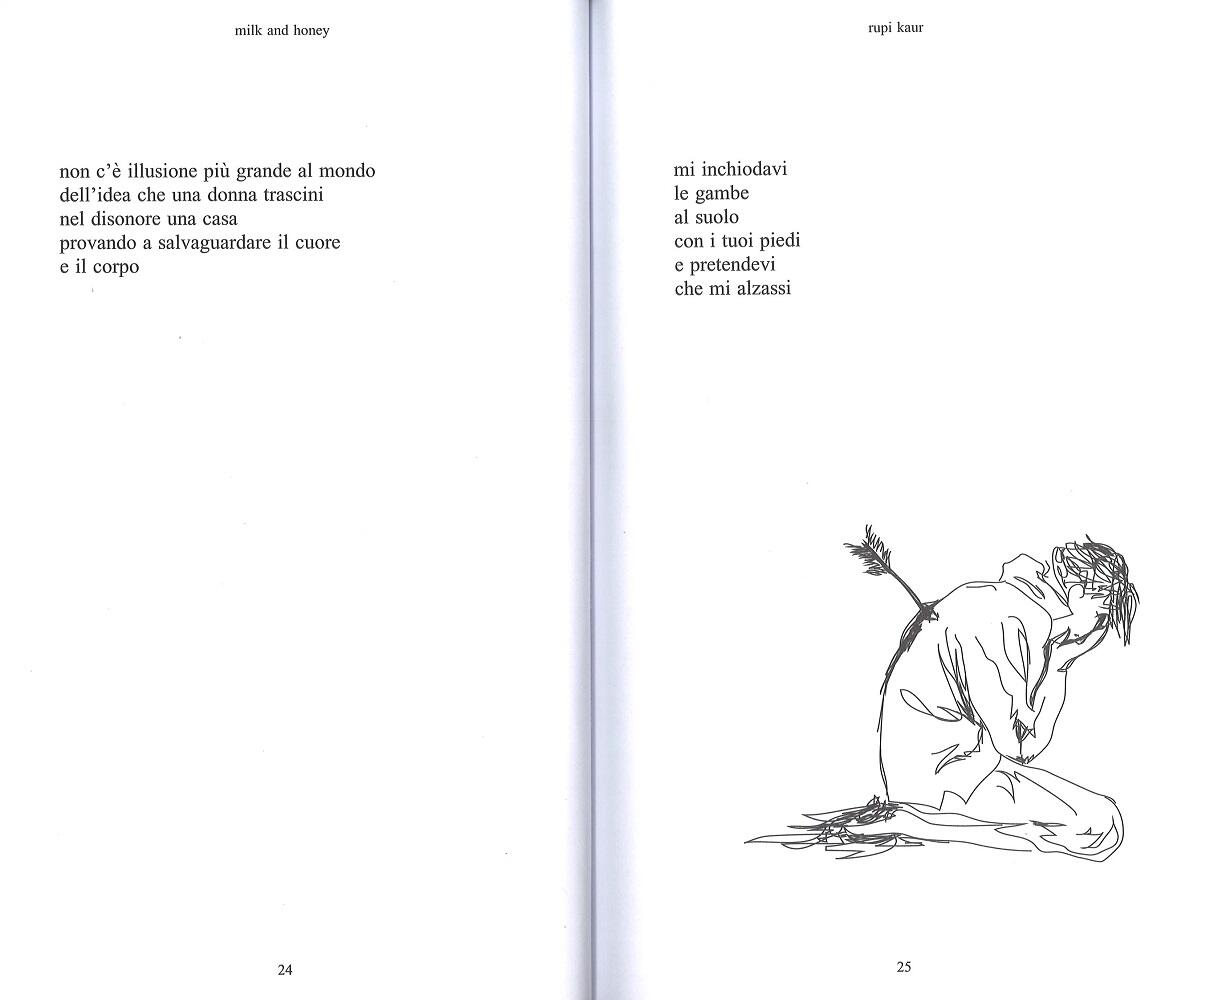 Milk and honey. Parole d'amore, di dolore, di perdita e di